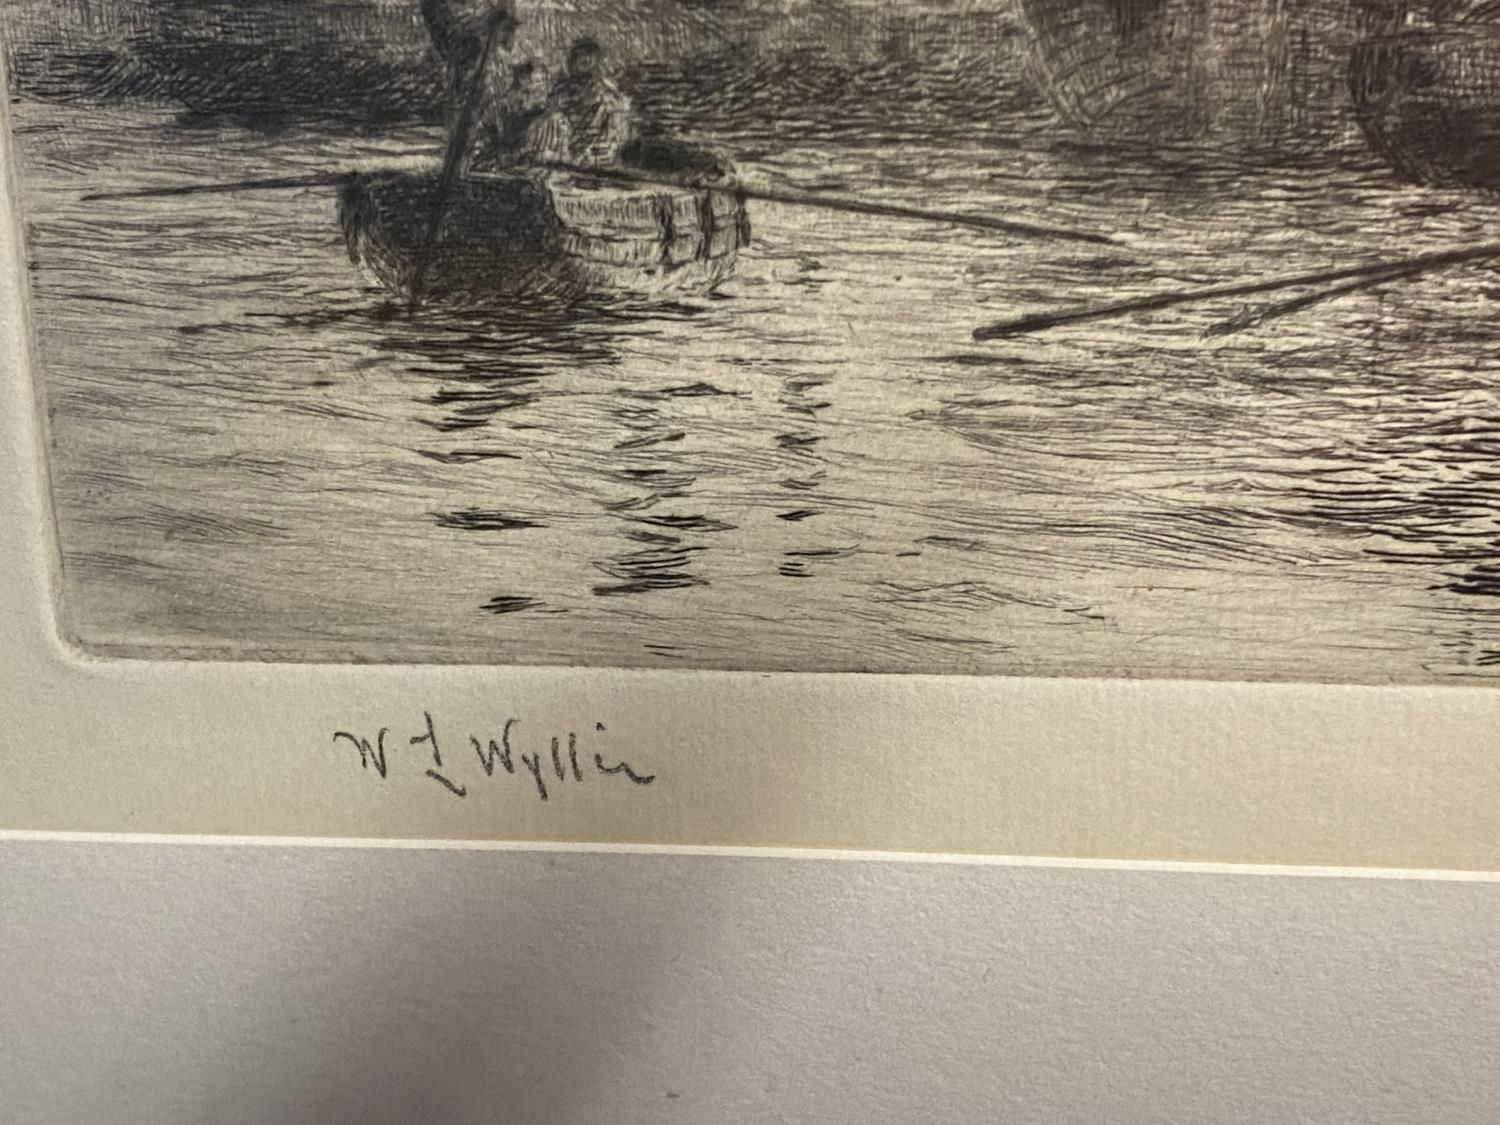 William Wylie, (1851-1931-), etching, Man of War with tugs in harbour, signed in pencil lower left - Image 12 of 12